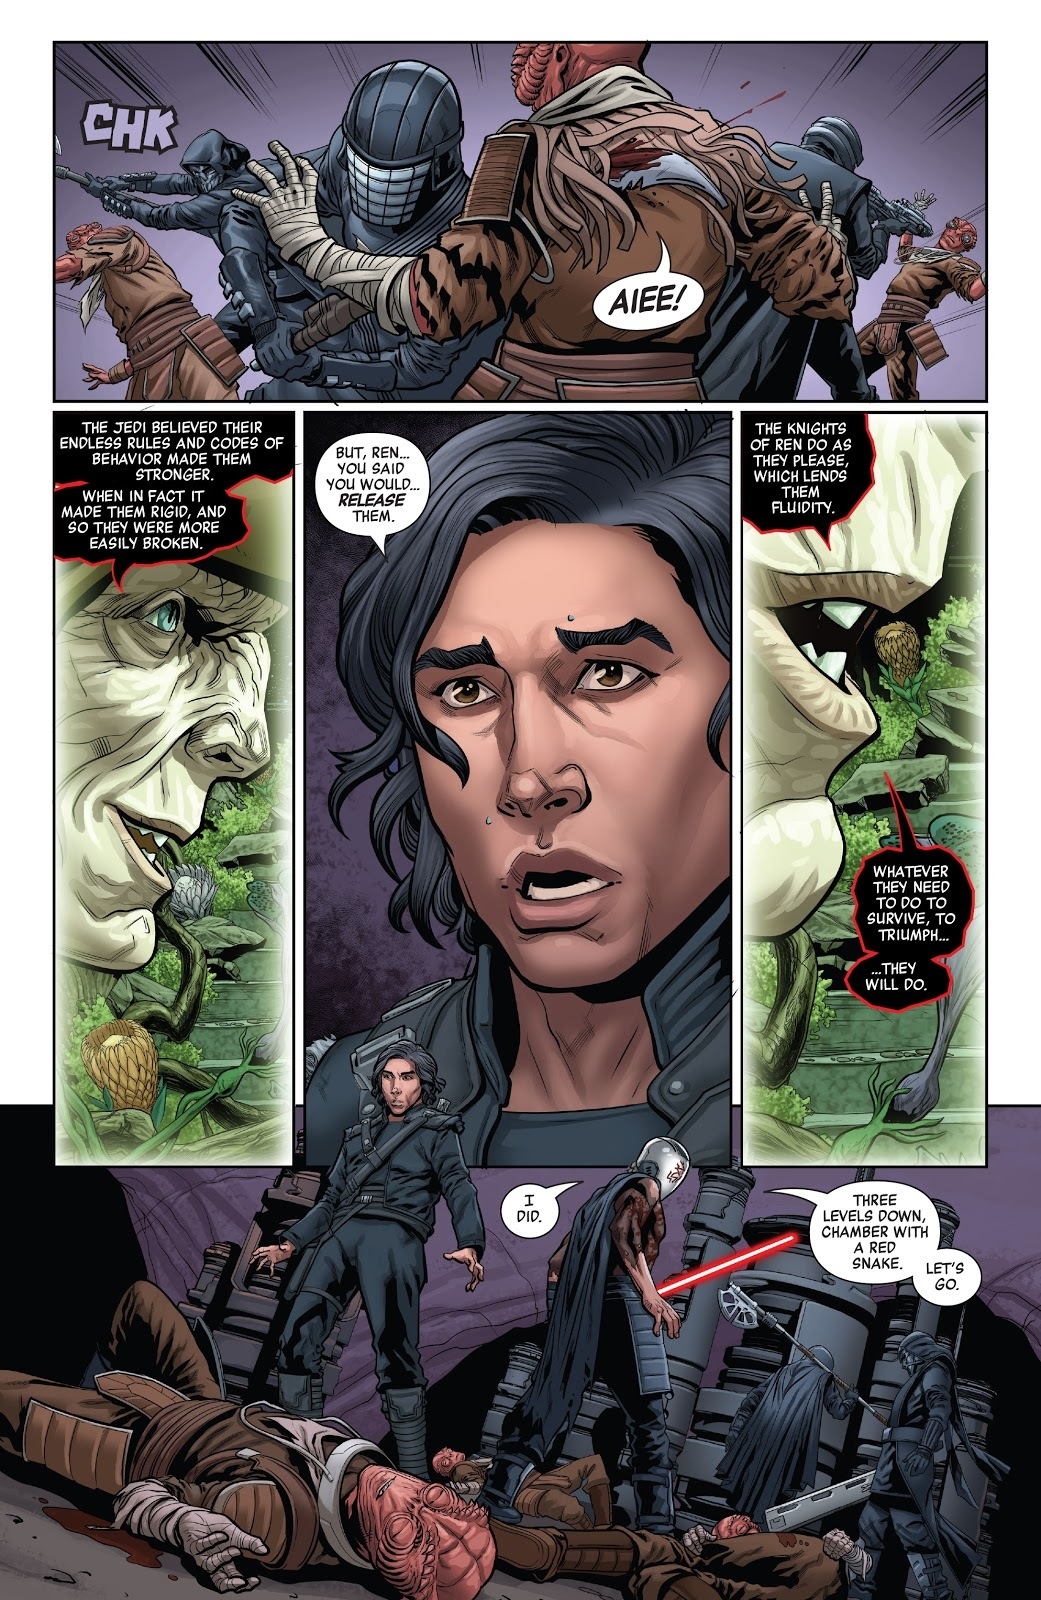 Star Wars: The Rise of Kylo Ren Issue 4